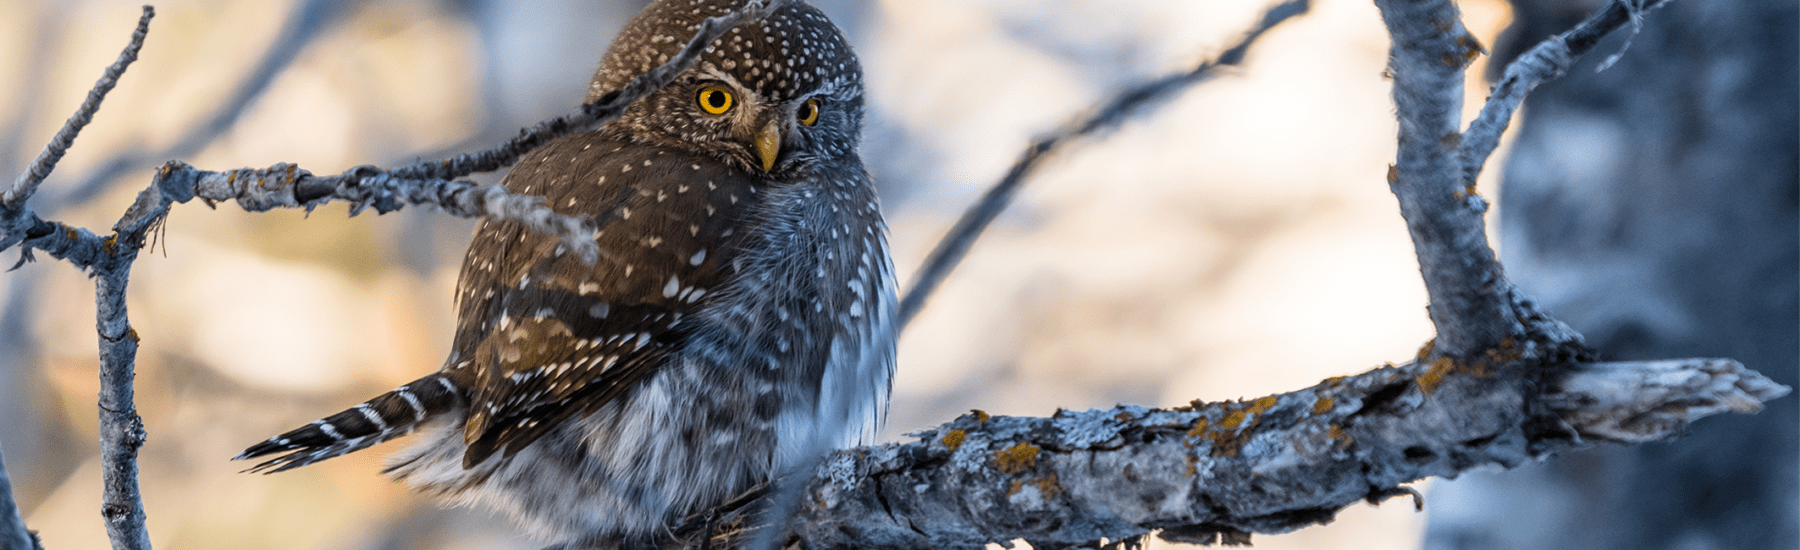 Small owl perched on a frosty branch